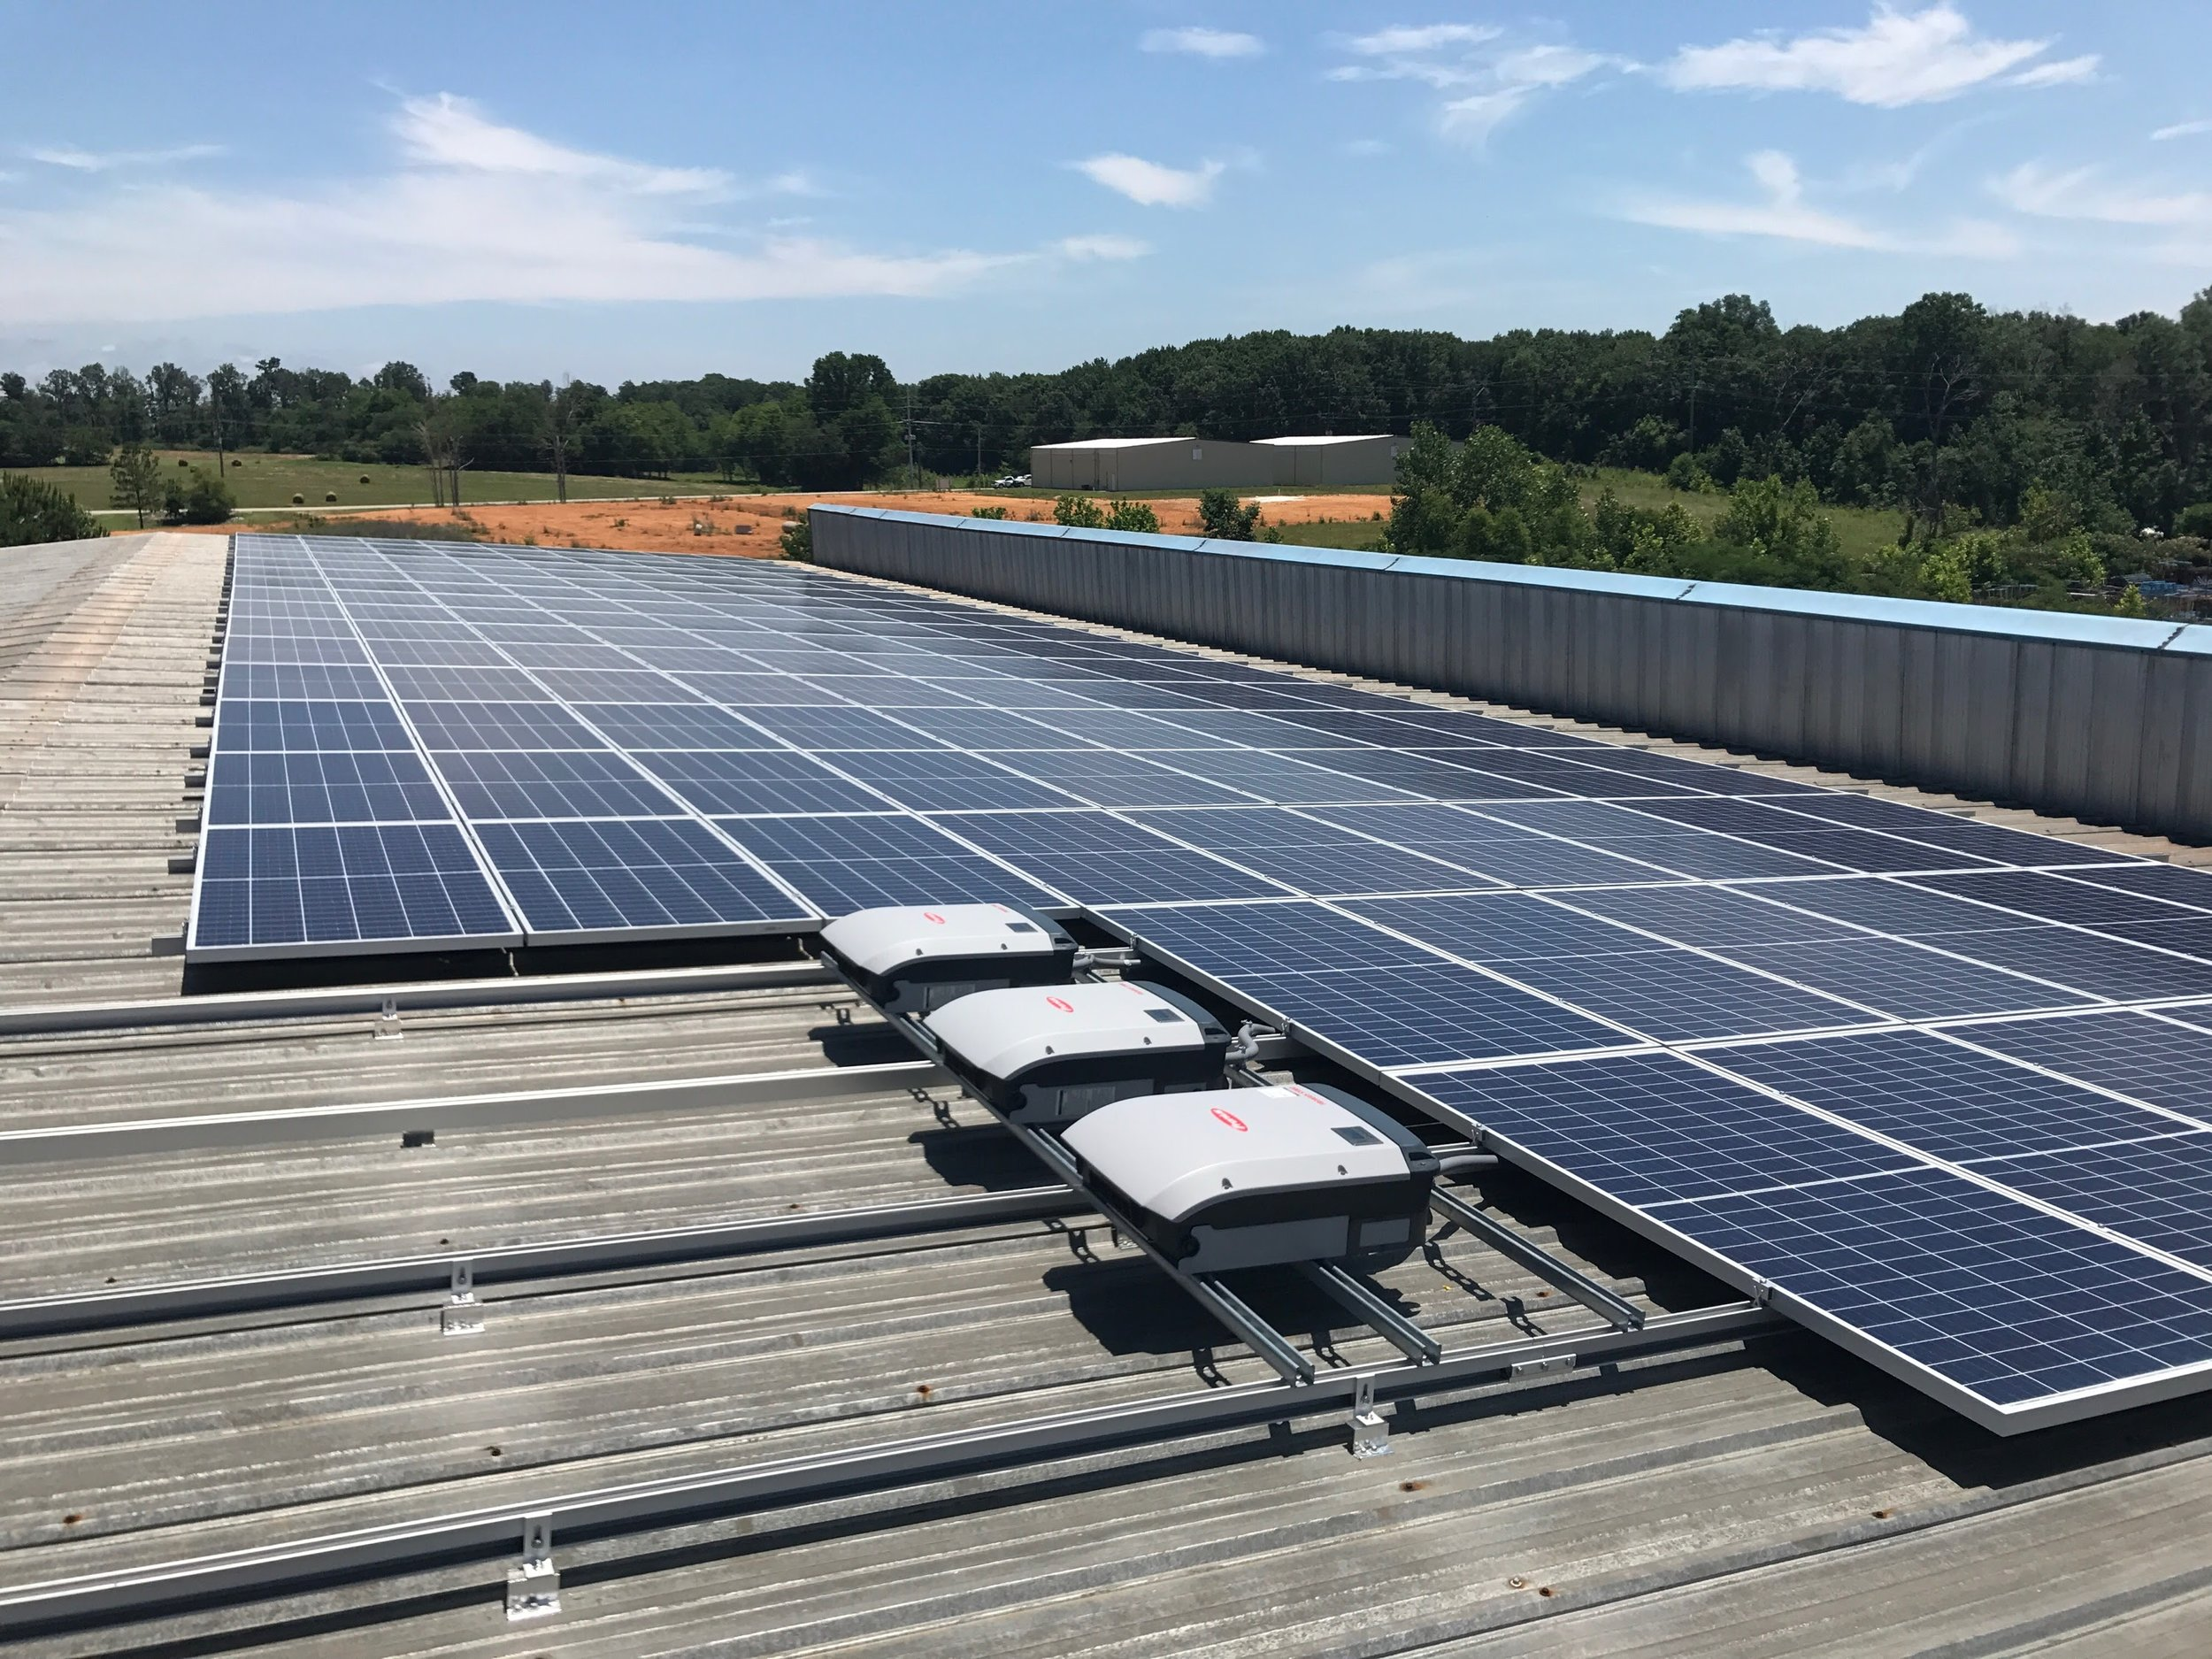 A beautiful sight in Alabama where solar has a ton of potential. Call today for Solar information on your building.